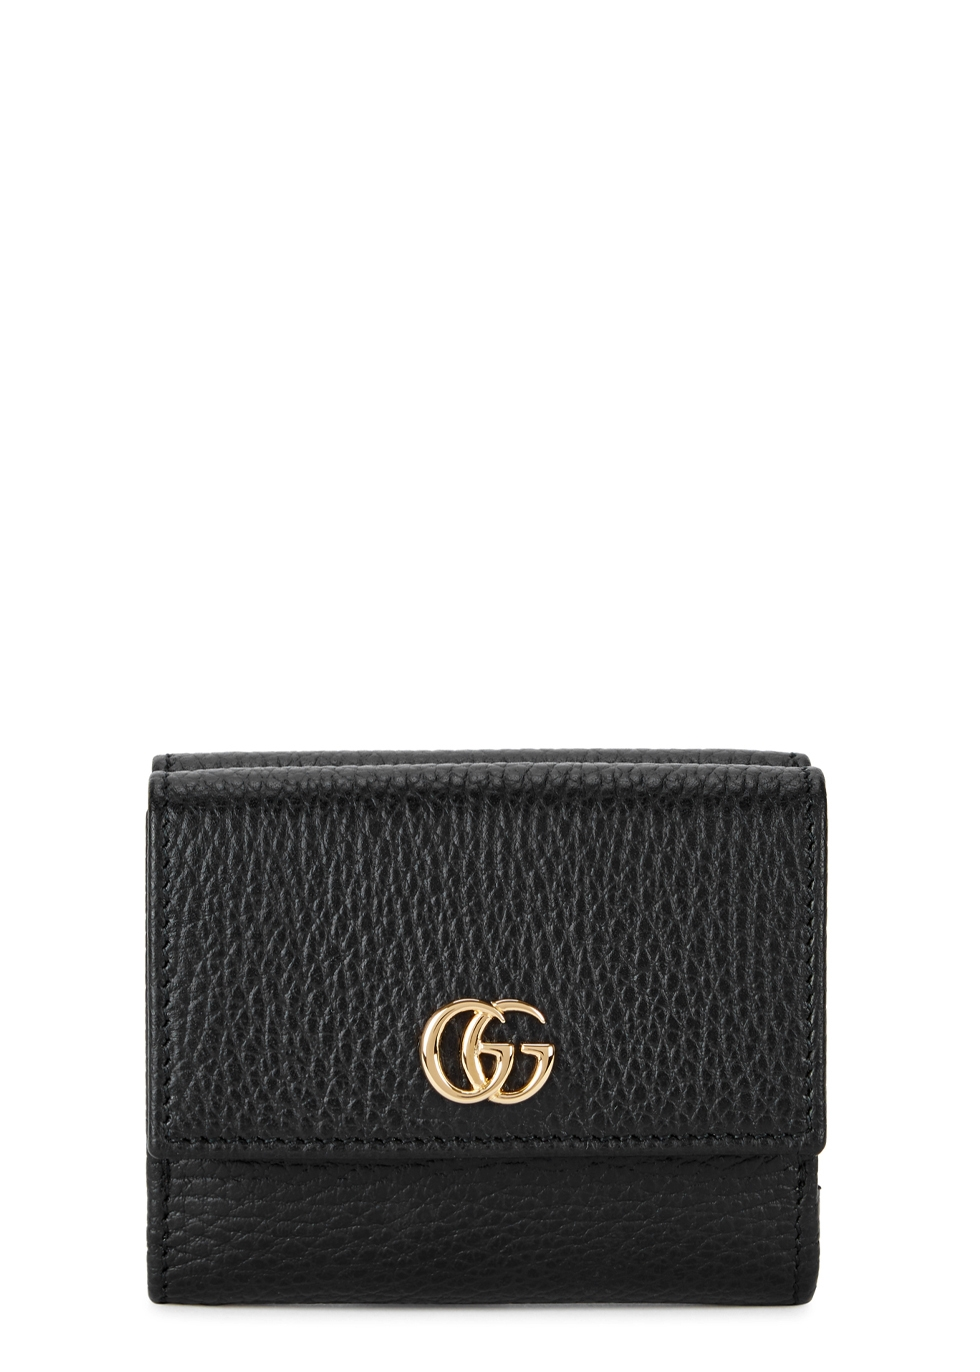 GG MARMONT MINI LEATHER WALLET